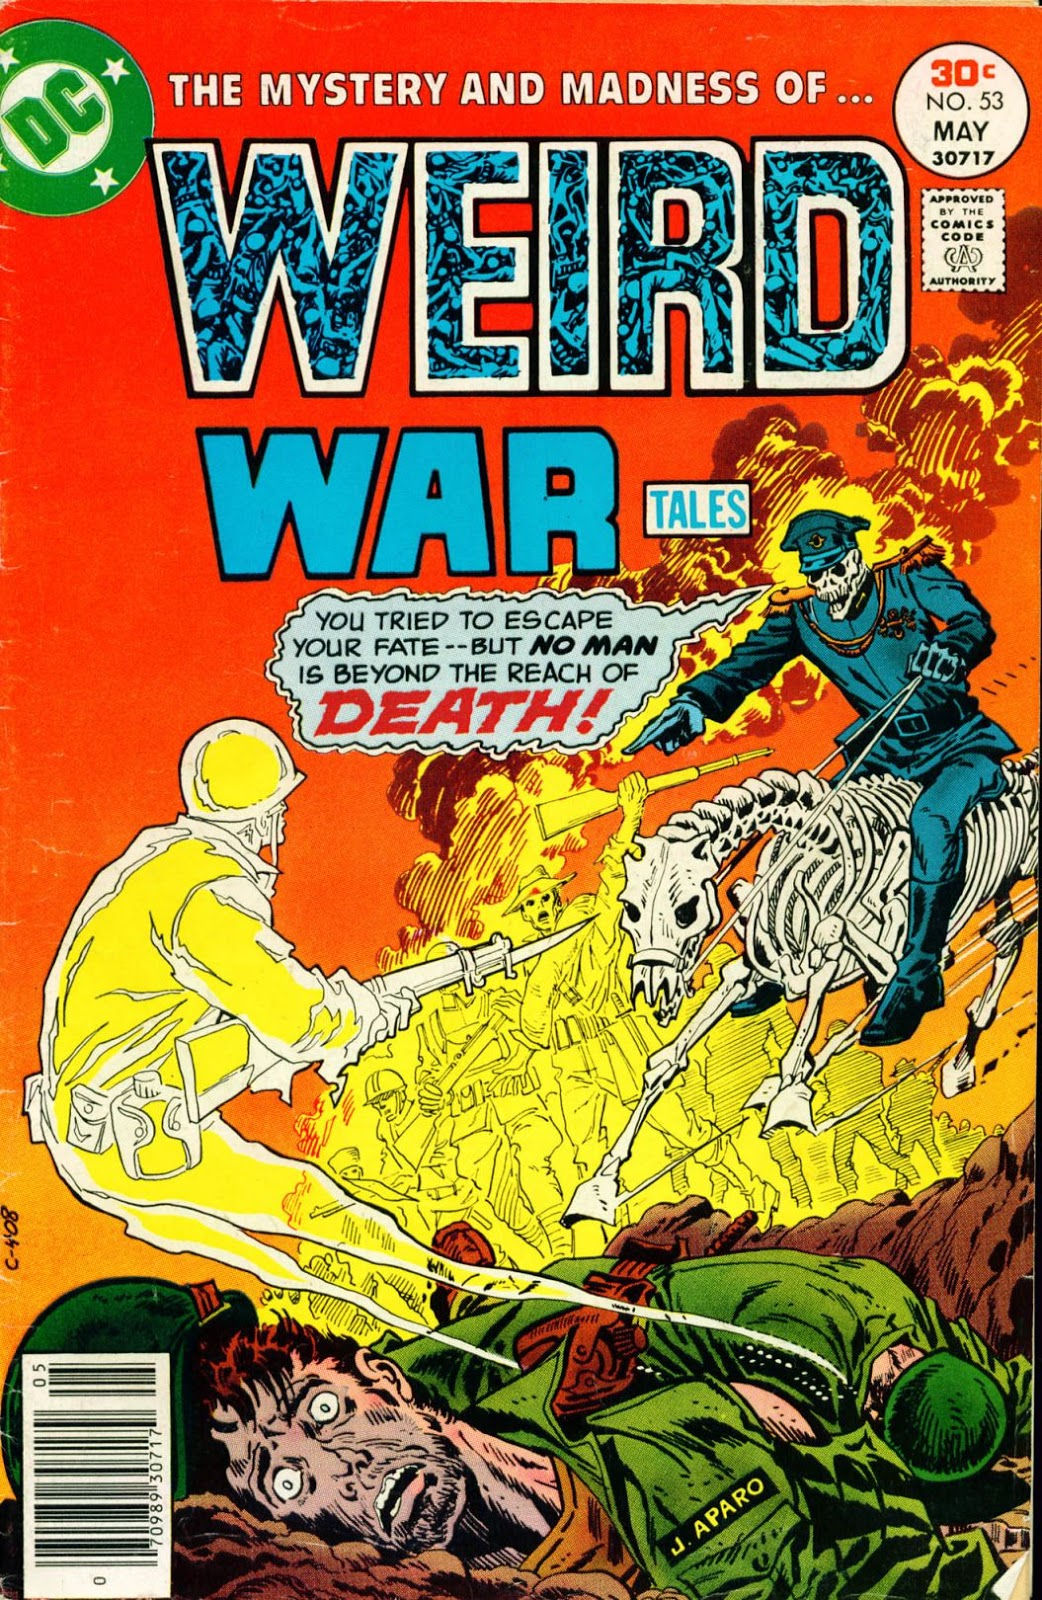 Weird War Tales #53 cover by Jim Aparo